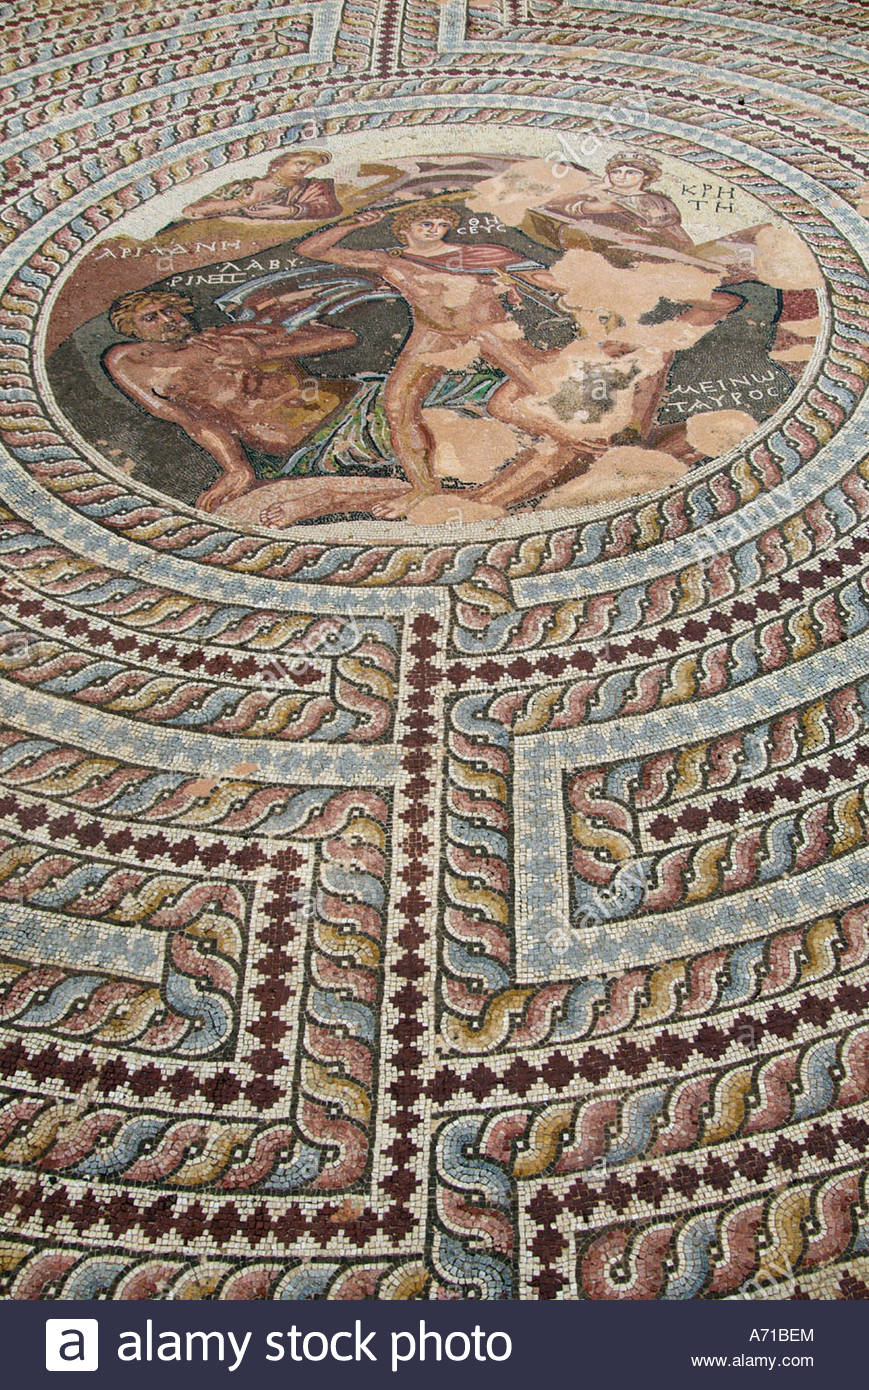 paphos-mosaic-pafos-roman-archeology-archeological-site-excavation-A71BEM